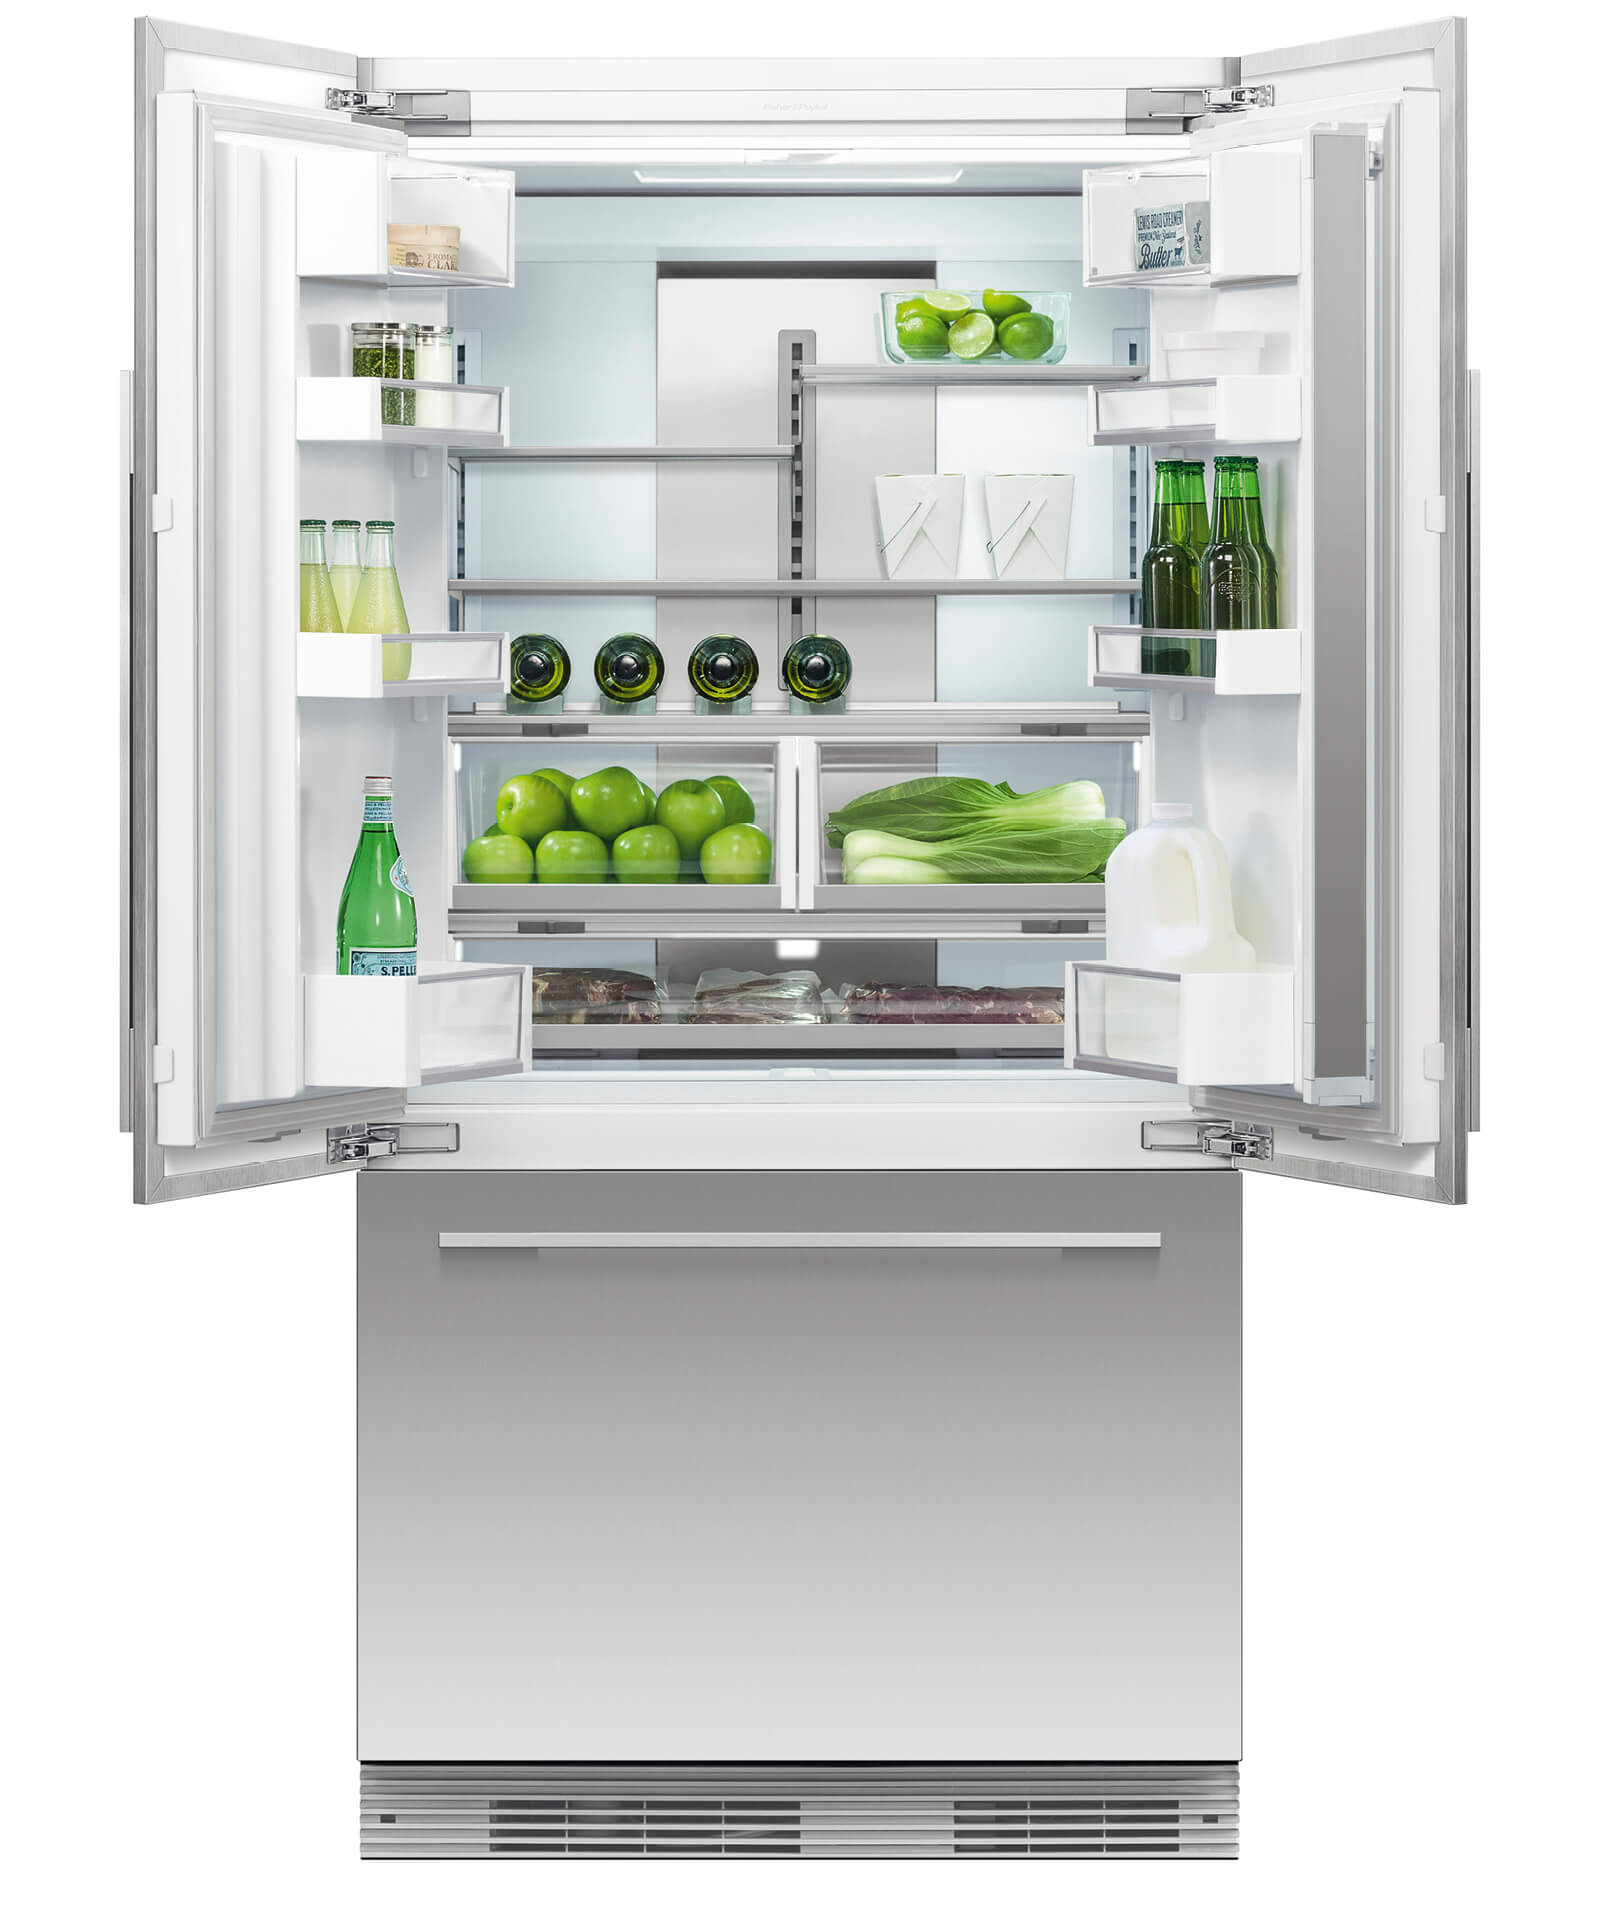 Rs36a72u1 integrated french door refrigerator fisher paykel prevnext asfbconference2016